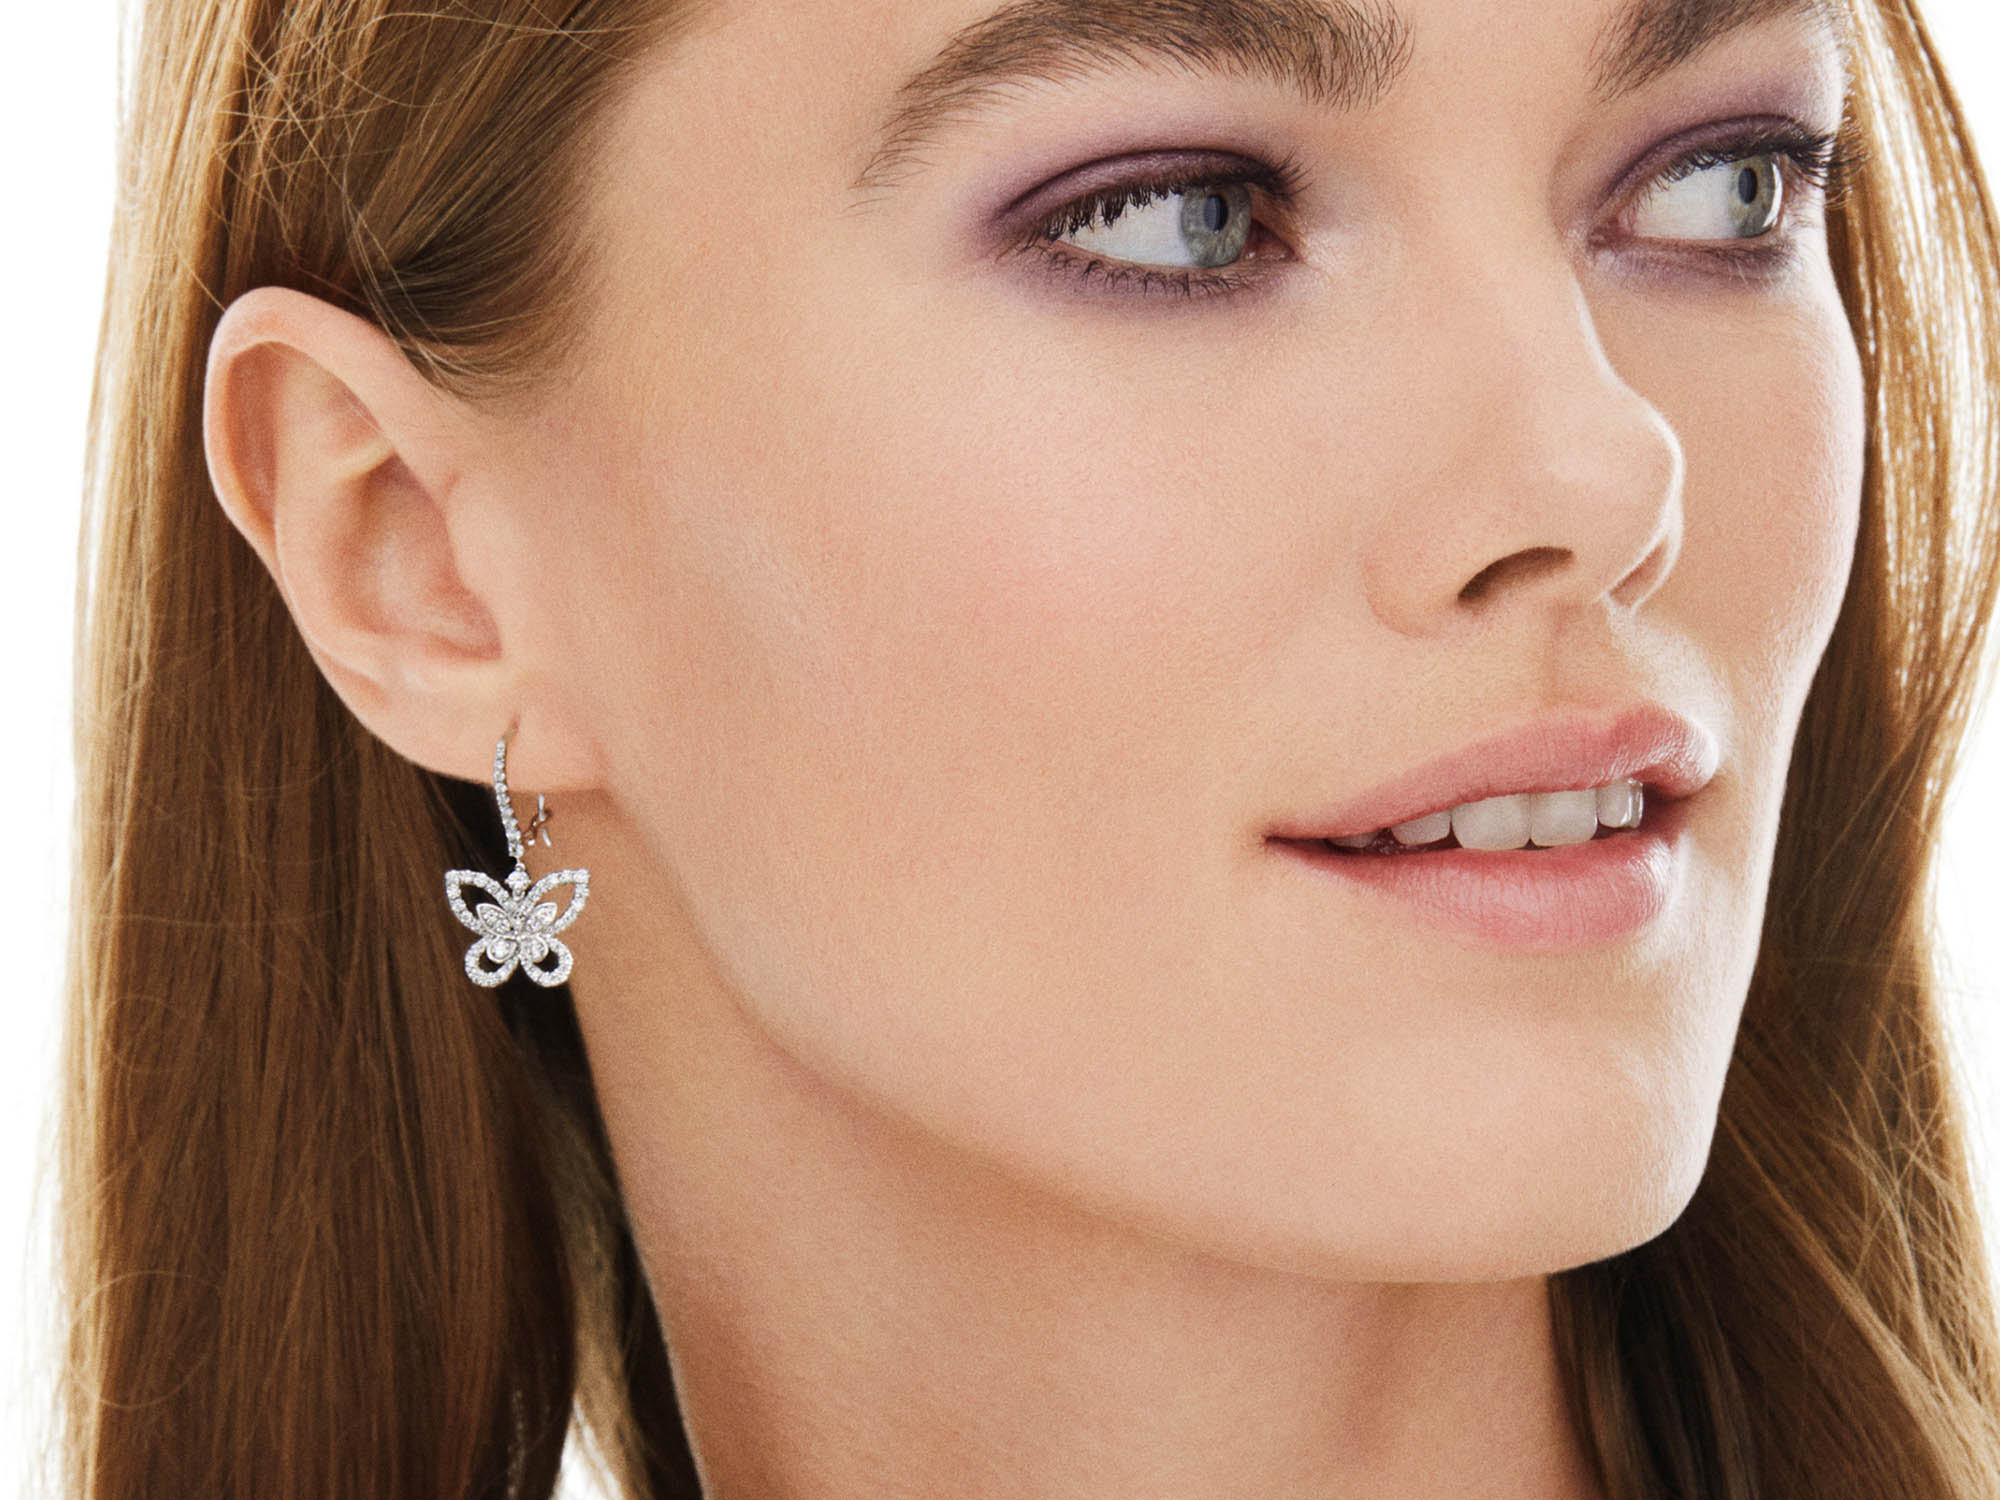 Model wears Butterfly Silhouette Diamond Drop Earrings from the Graff jewellery collection